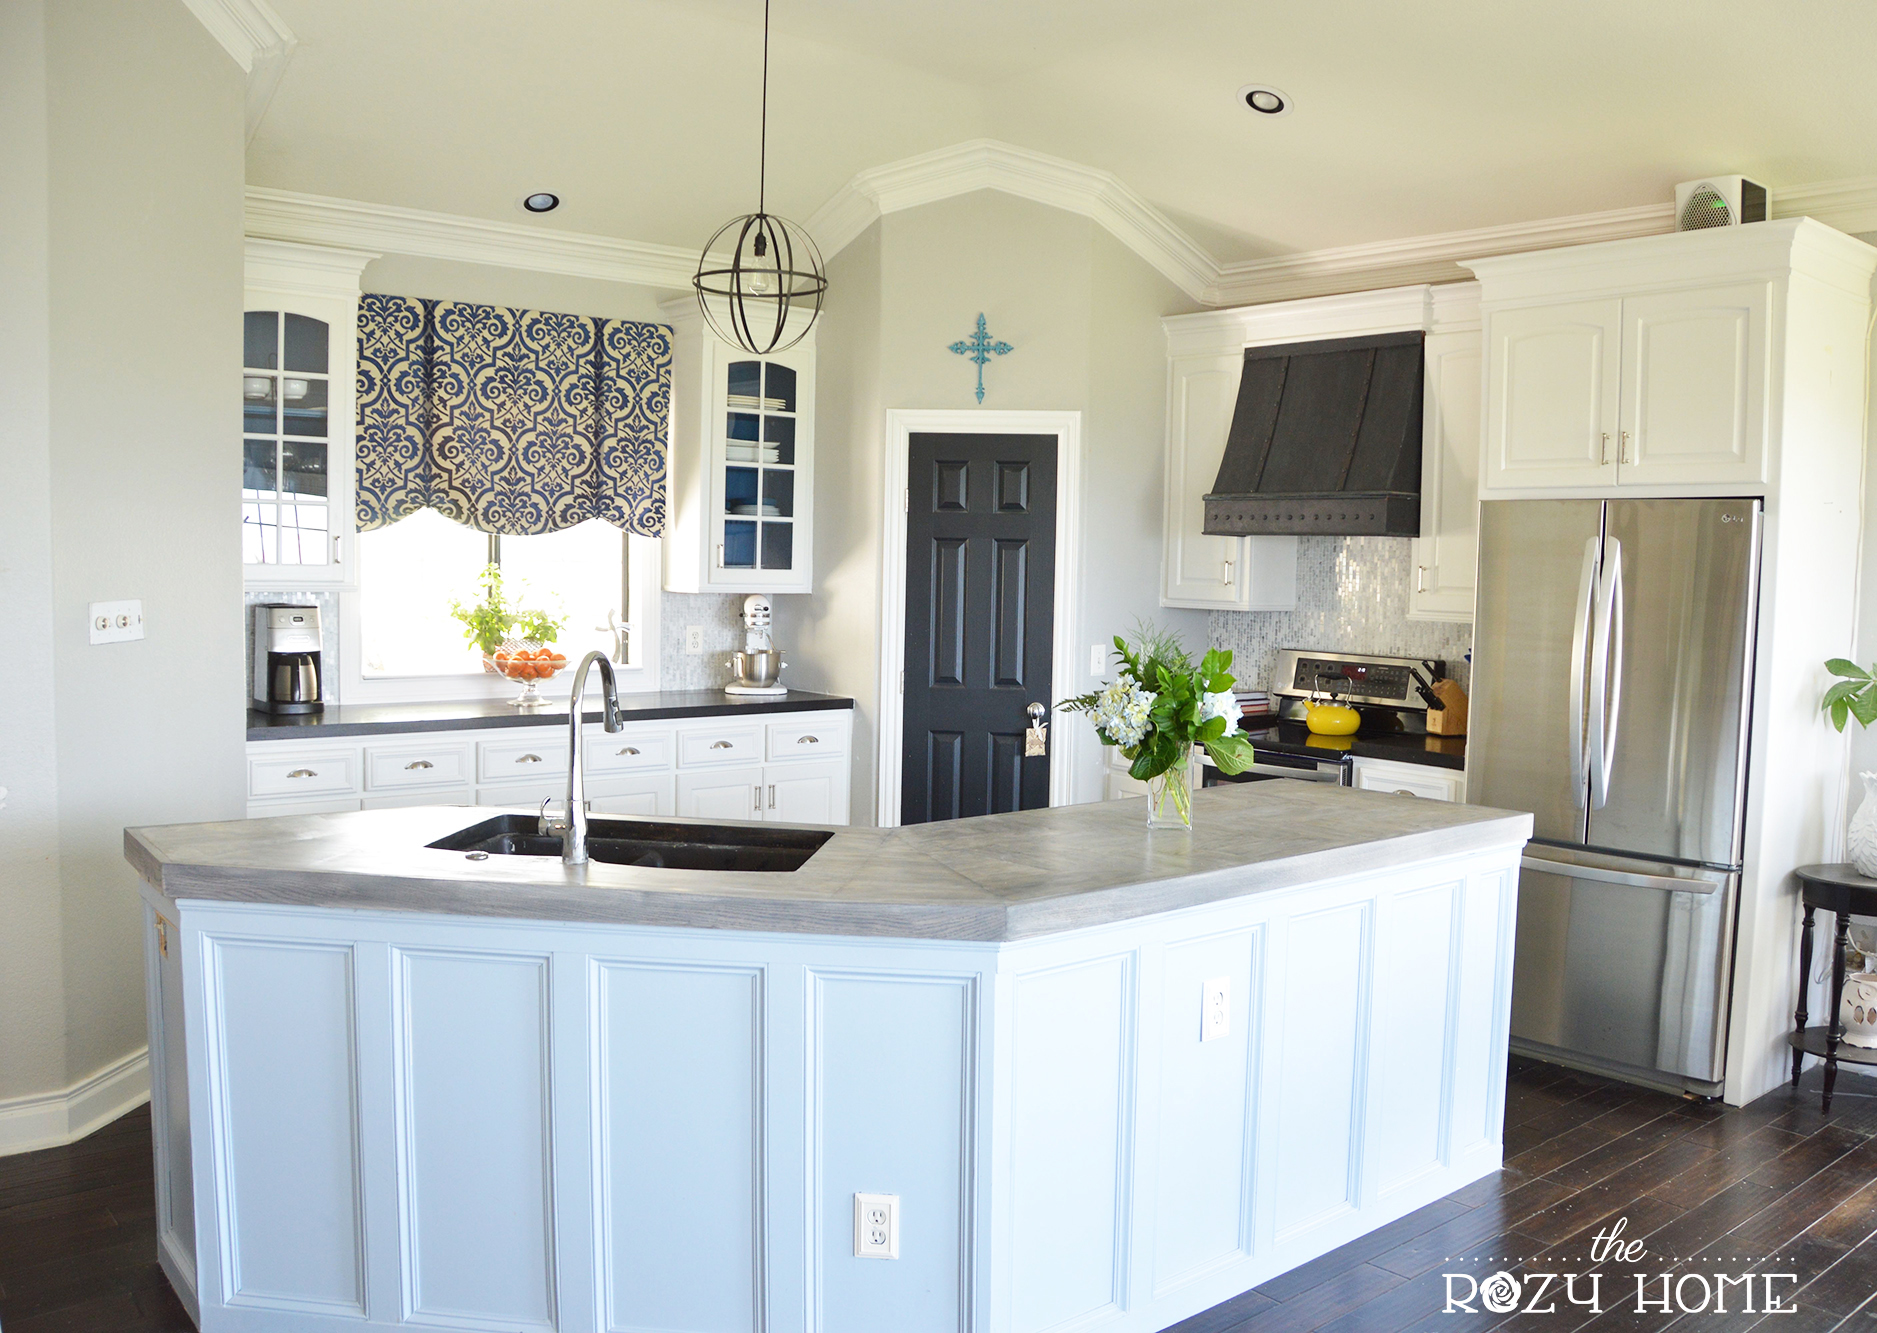 Uncategorized Mdf Kitchen Cabinets Reviews remodelaholic diy refinished and painted cabinet reviews jill the rozy home kitchen cabinets review diy